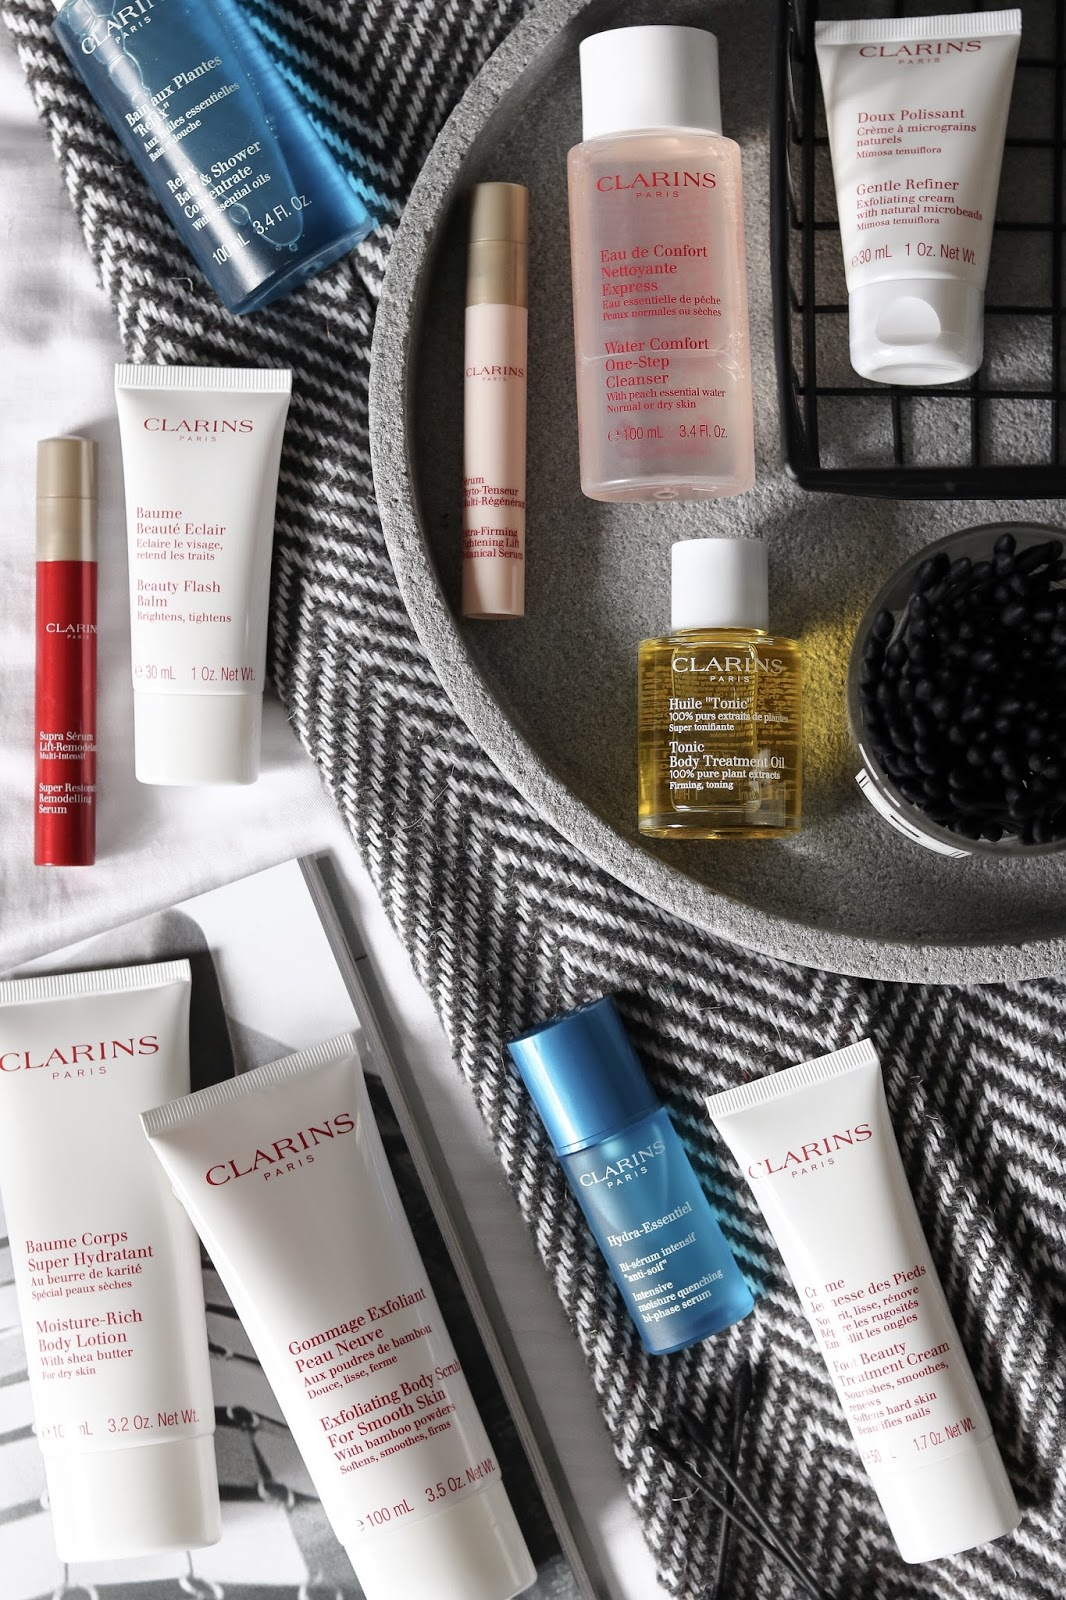 Clarins Super Beauty Gift at House of Fraser Glasgow - Last Chance!